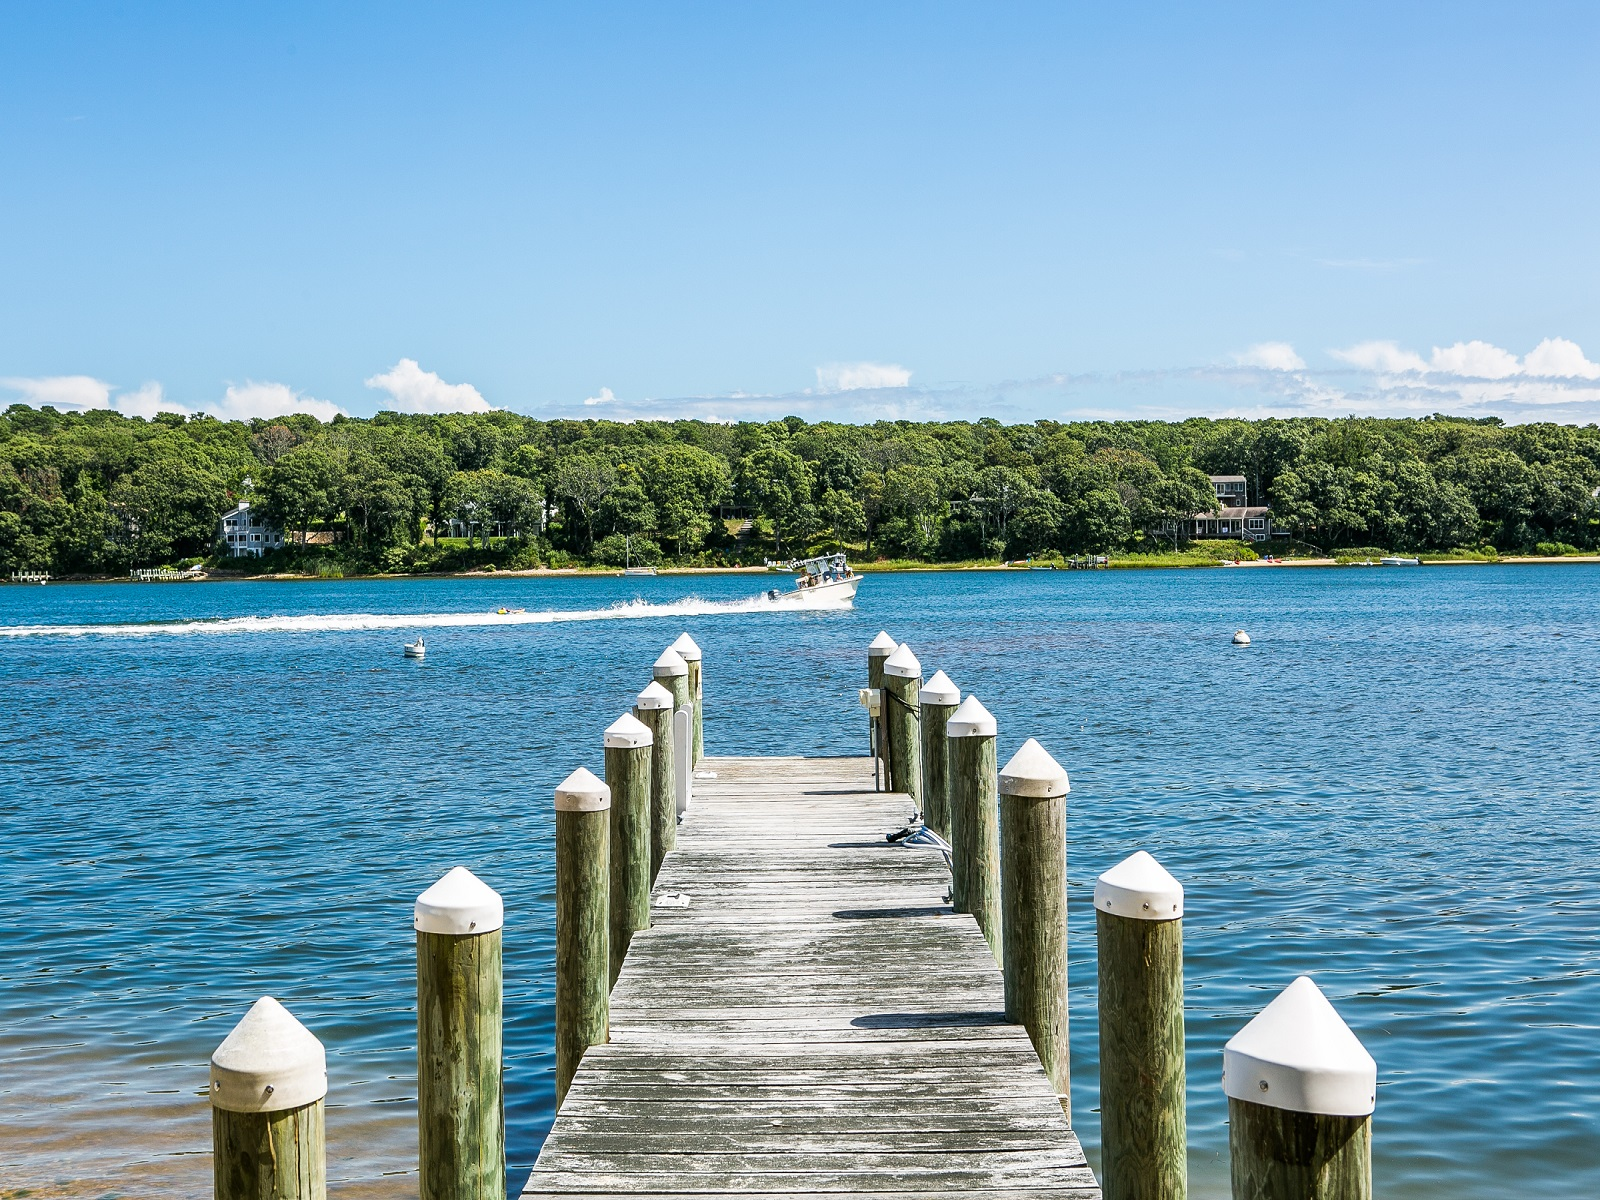 Single Family Home for Sale at Waterfront home with dock on the Lagoon 20 Sunnyside Avenue Vineyard Haven, Massachusetts, 02568 United States